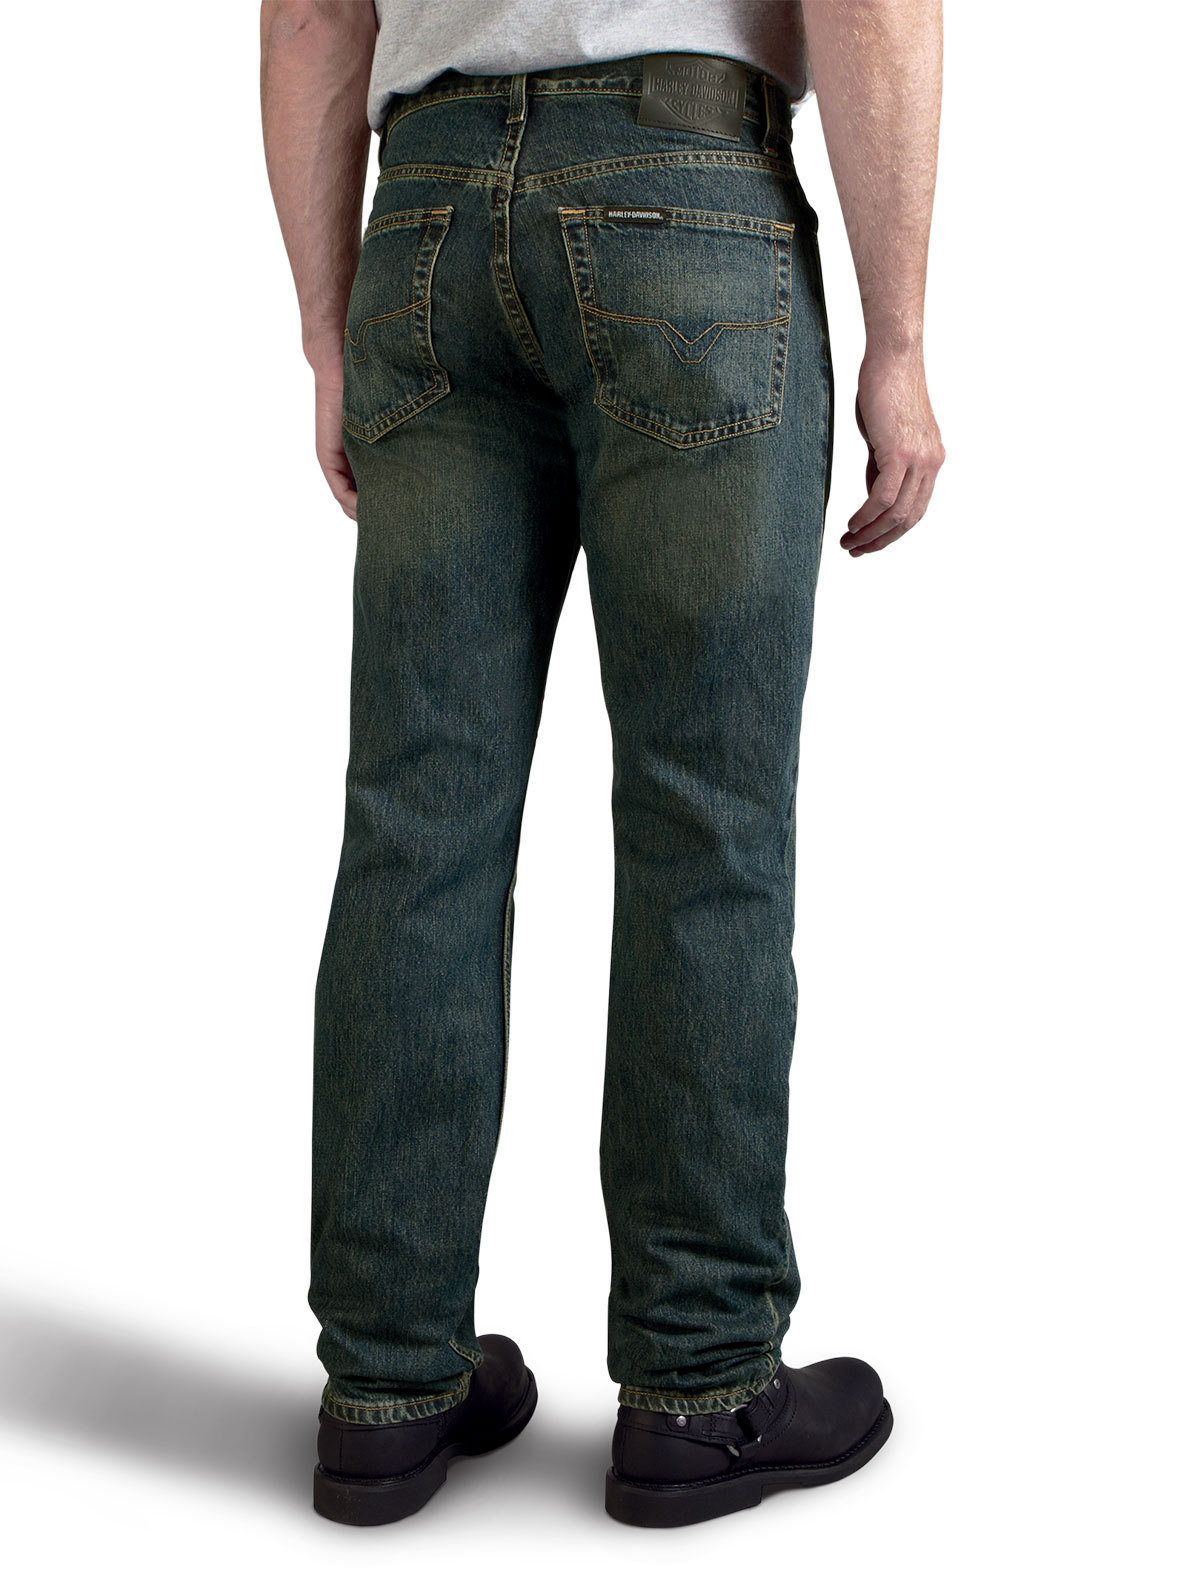 HARLEY DAVIDSON CLASSIC TRADITIONAL FIT JEANSMENS, WASHED BLUE